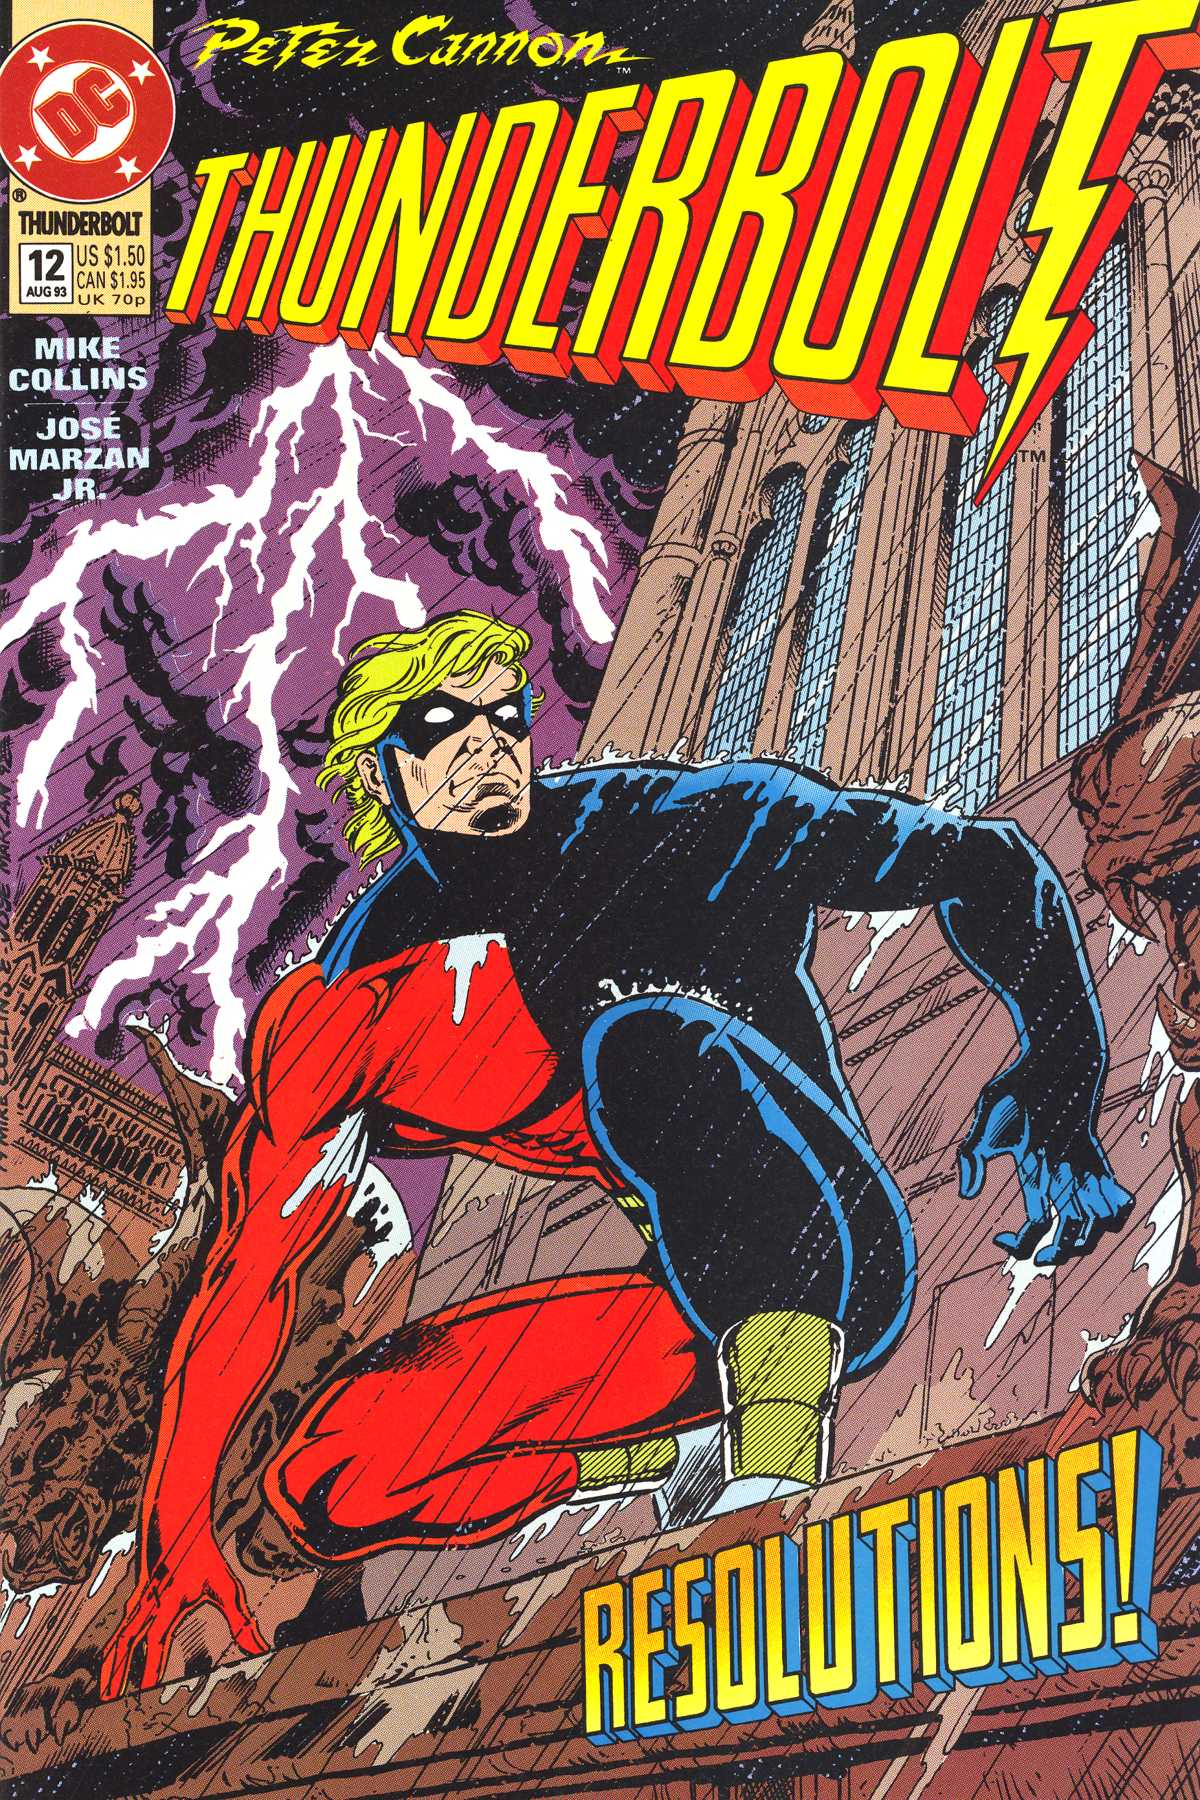 Read online Peter Cannon--Thunderbolt (1992) comic -  Issue #12 - 1